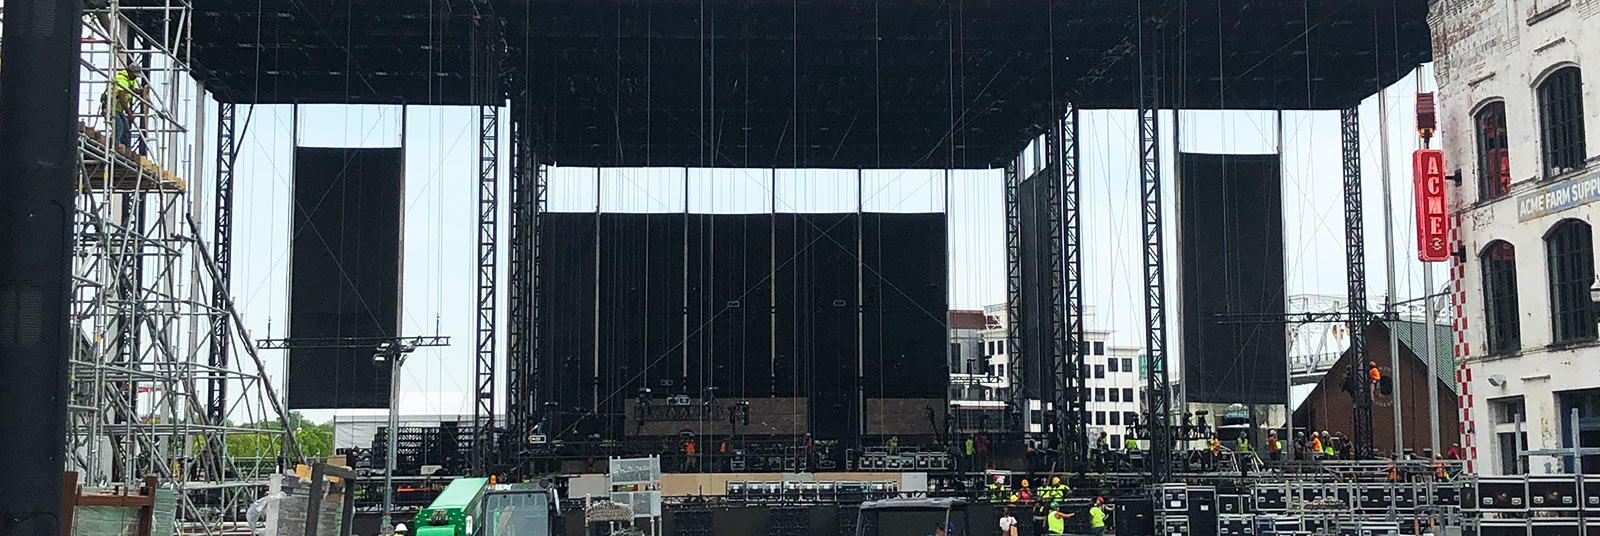 View of the temporary stage under production at the 2019 NFL Draft in Nashville, Tennessee.